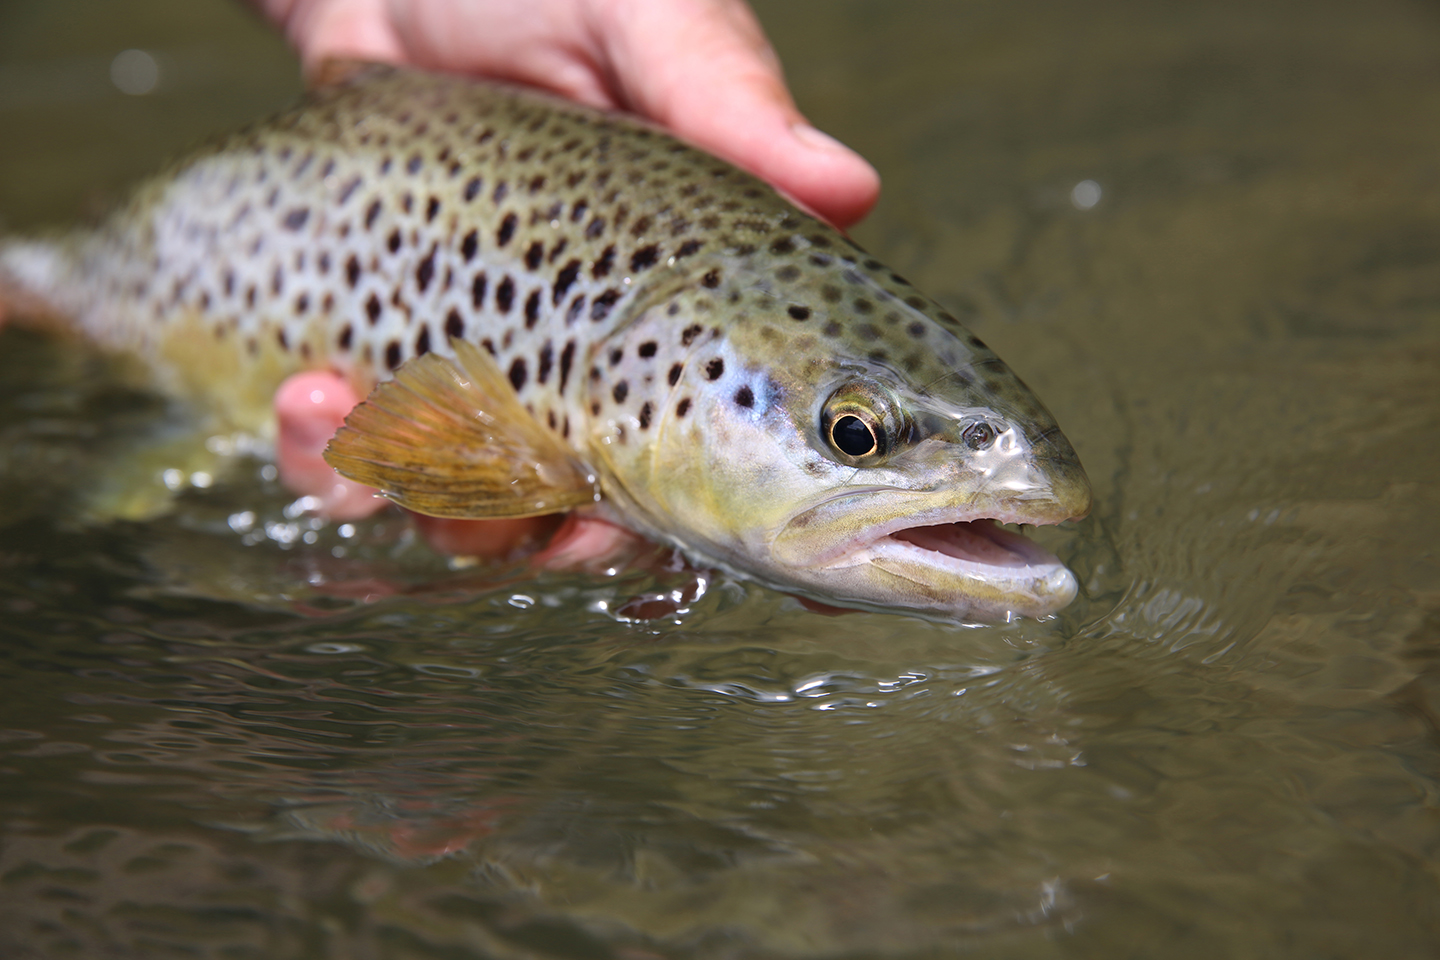 A Brown Trout about to be released into the water